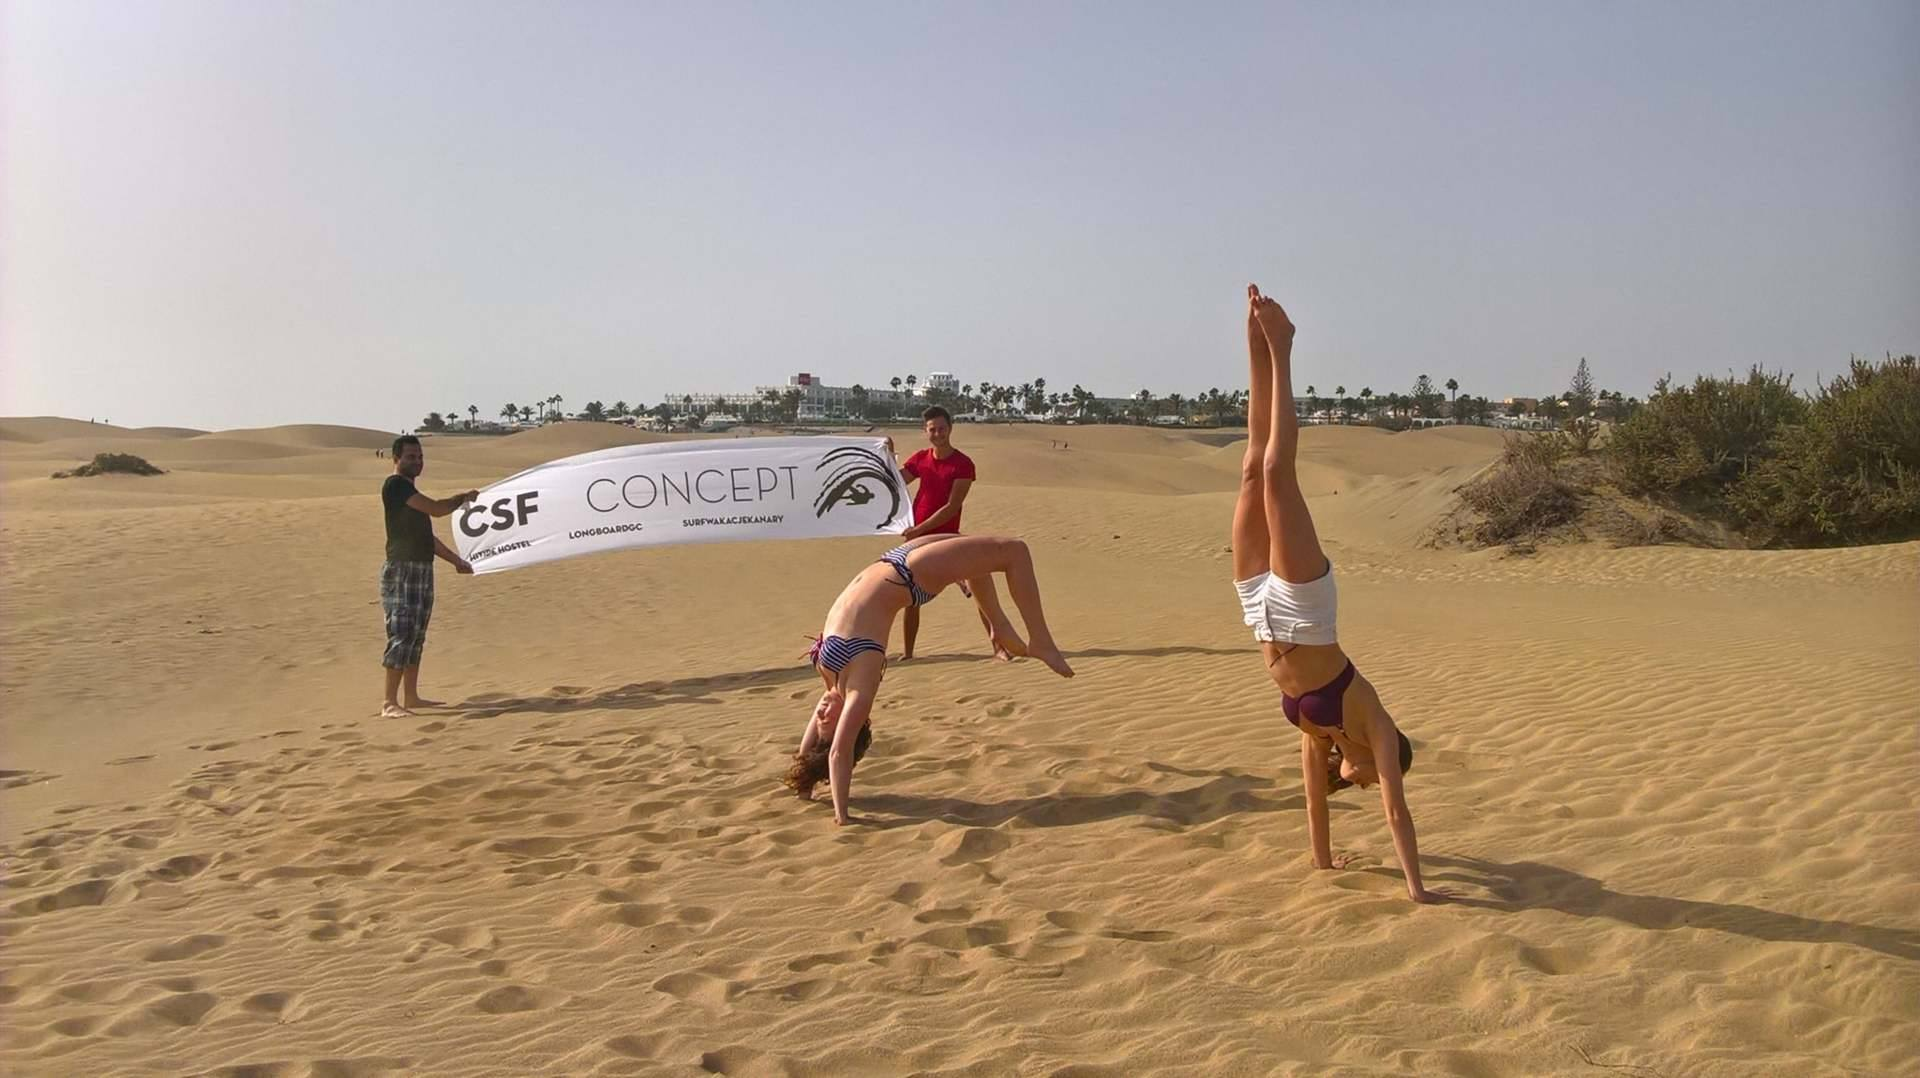 CSF CONCEPT ON THE DUNES